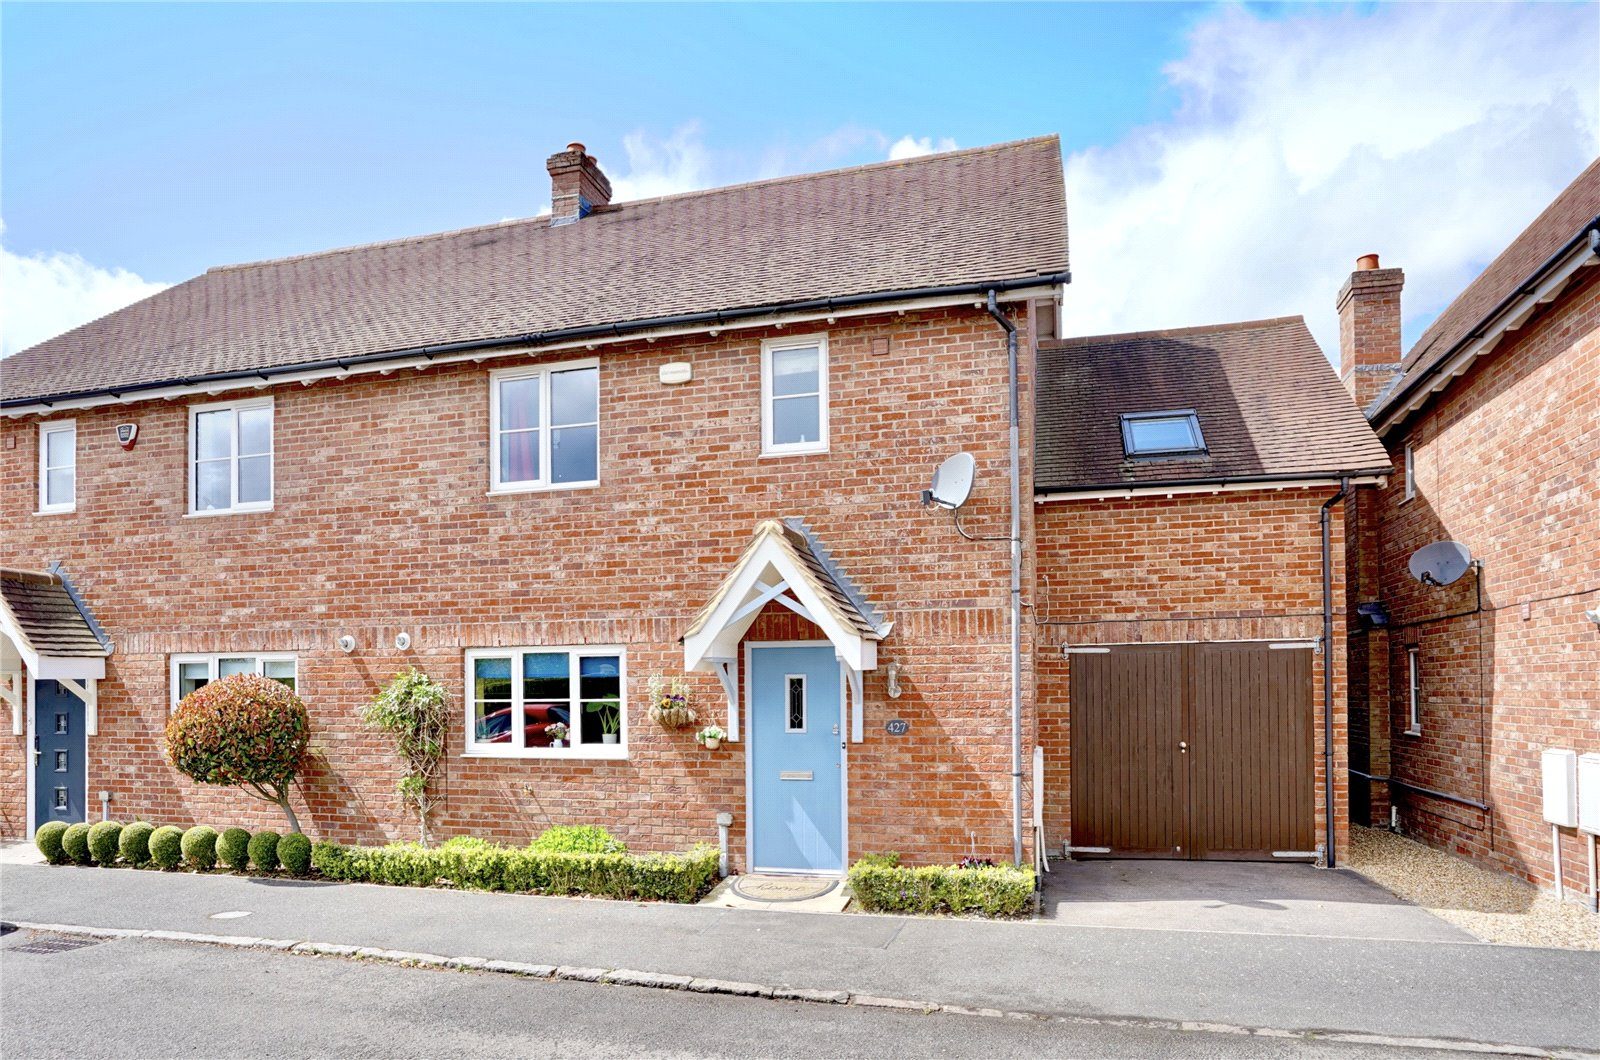 4 bed house for sale in Great North Road, Eaton Ford - Property Image 1